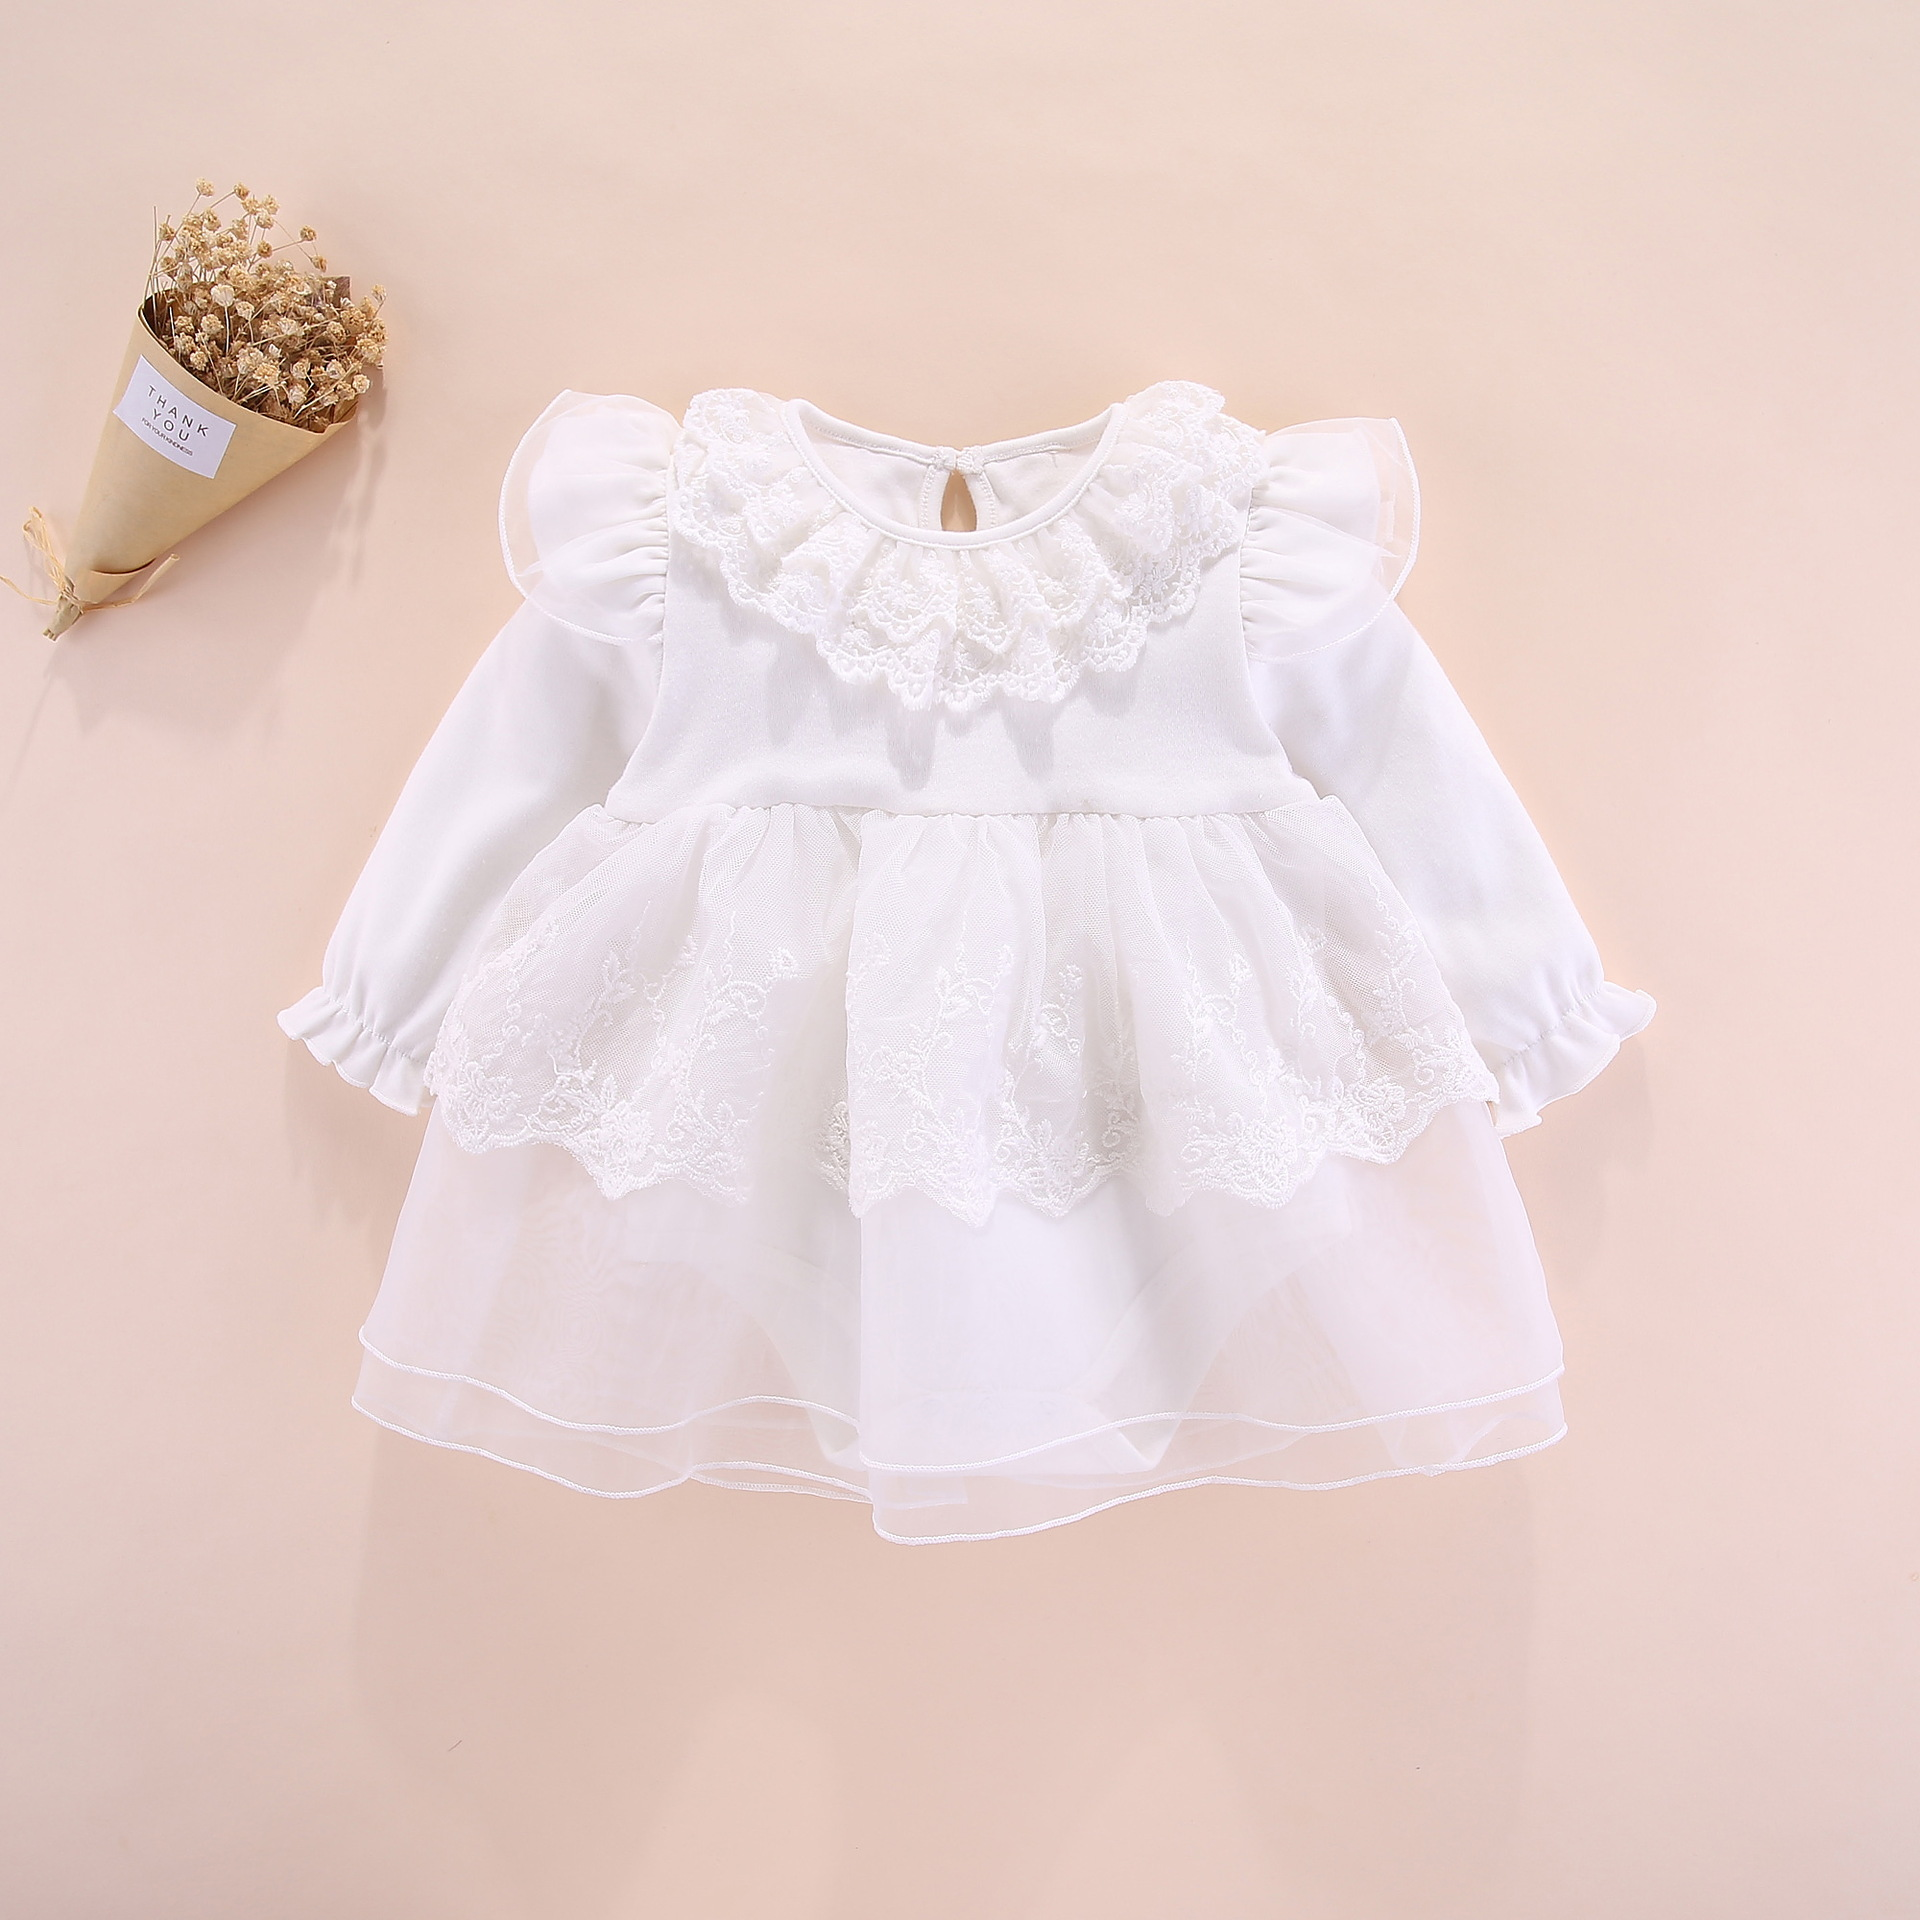 Newborn Baby Girls Off-The-Shoulder Lace Baptism Romper Summer Outfits